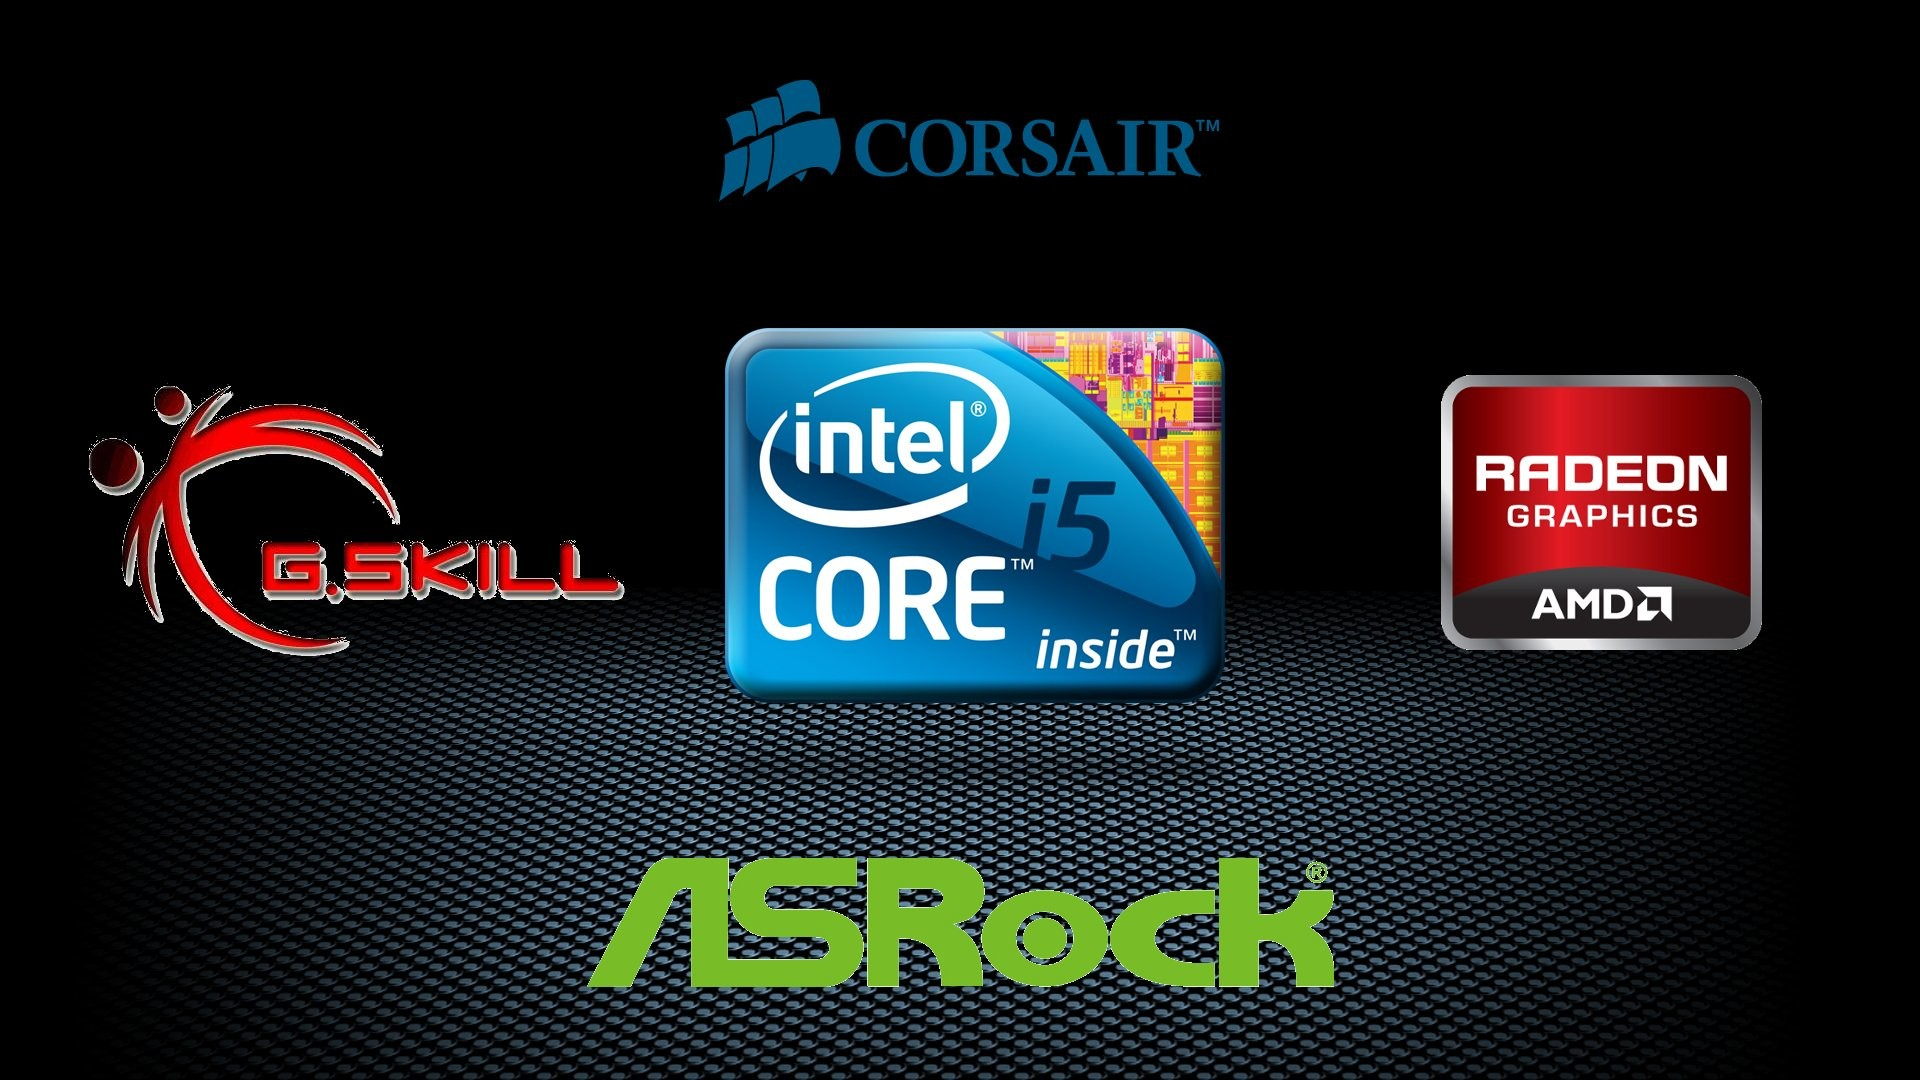 Asrock Wallpapers 73 images 1920x1080